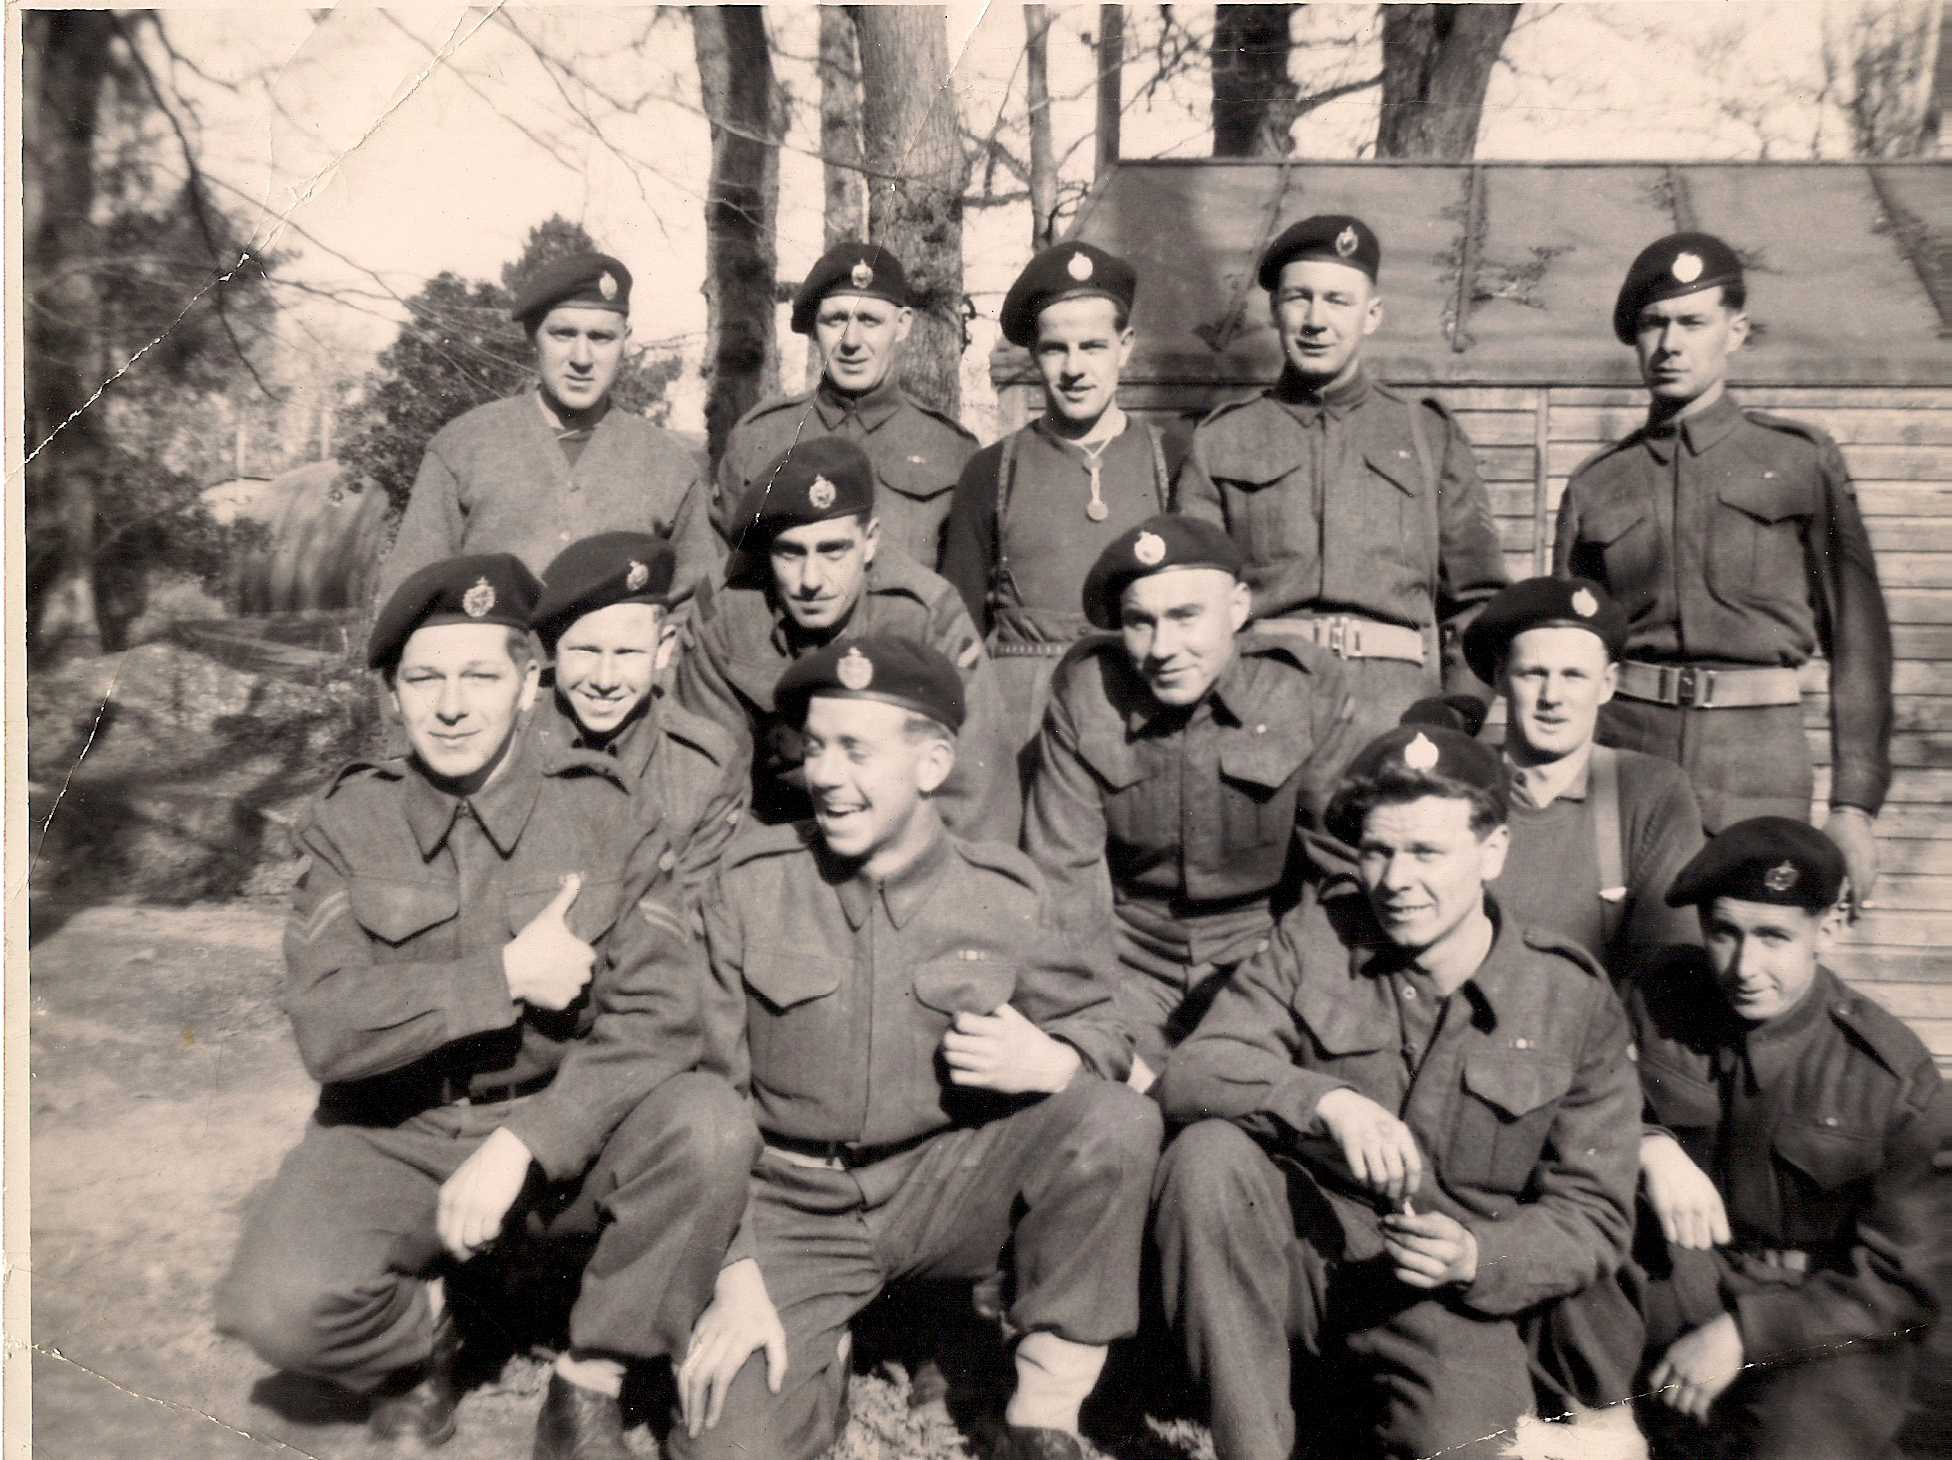 Group Photo– Trooper J.W. Ritchie is first on the left in the middle row in this photograph.